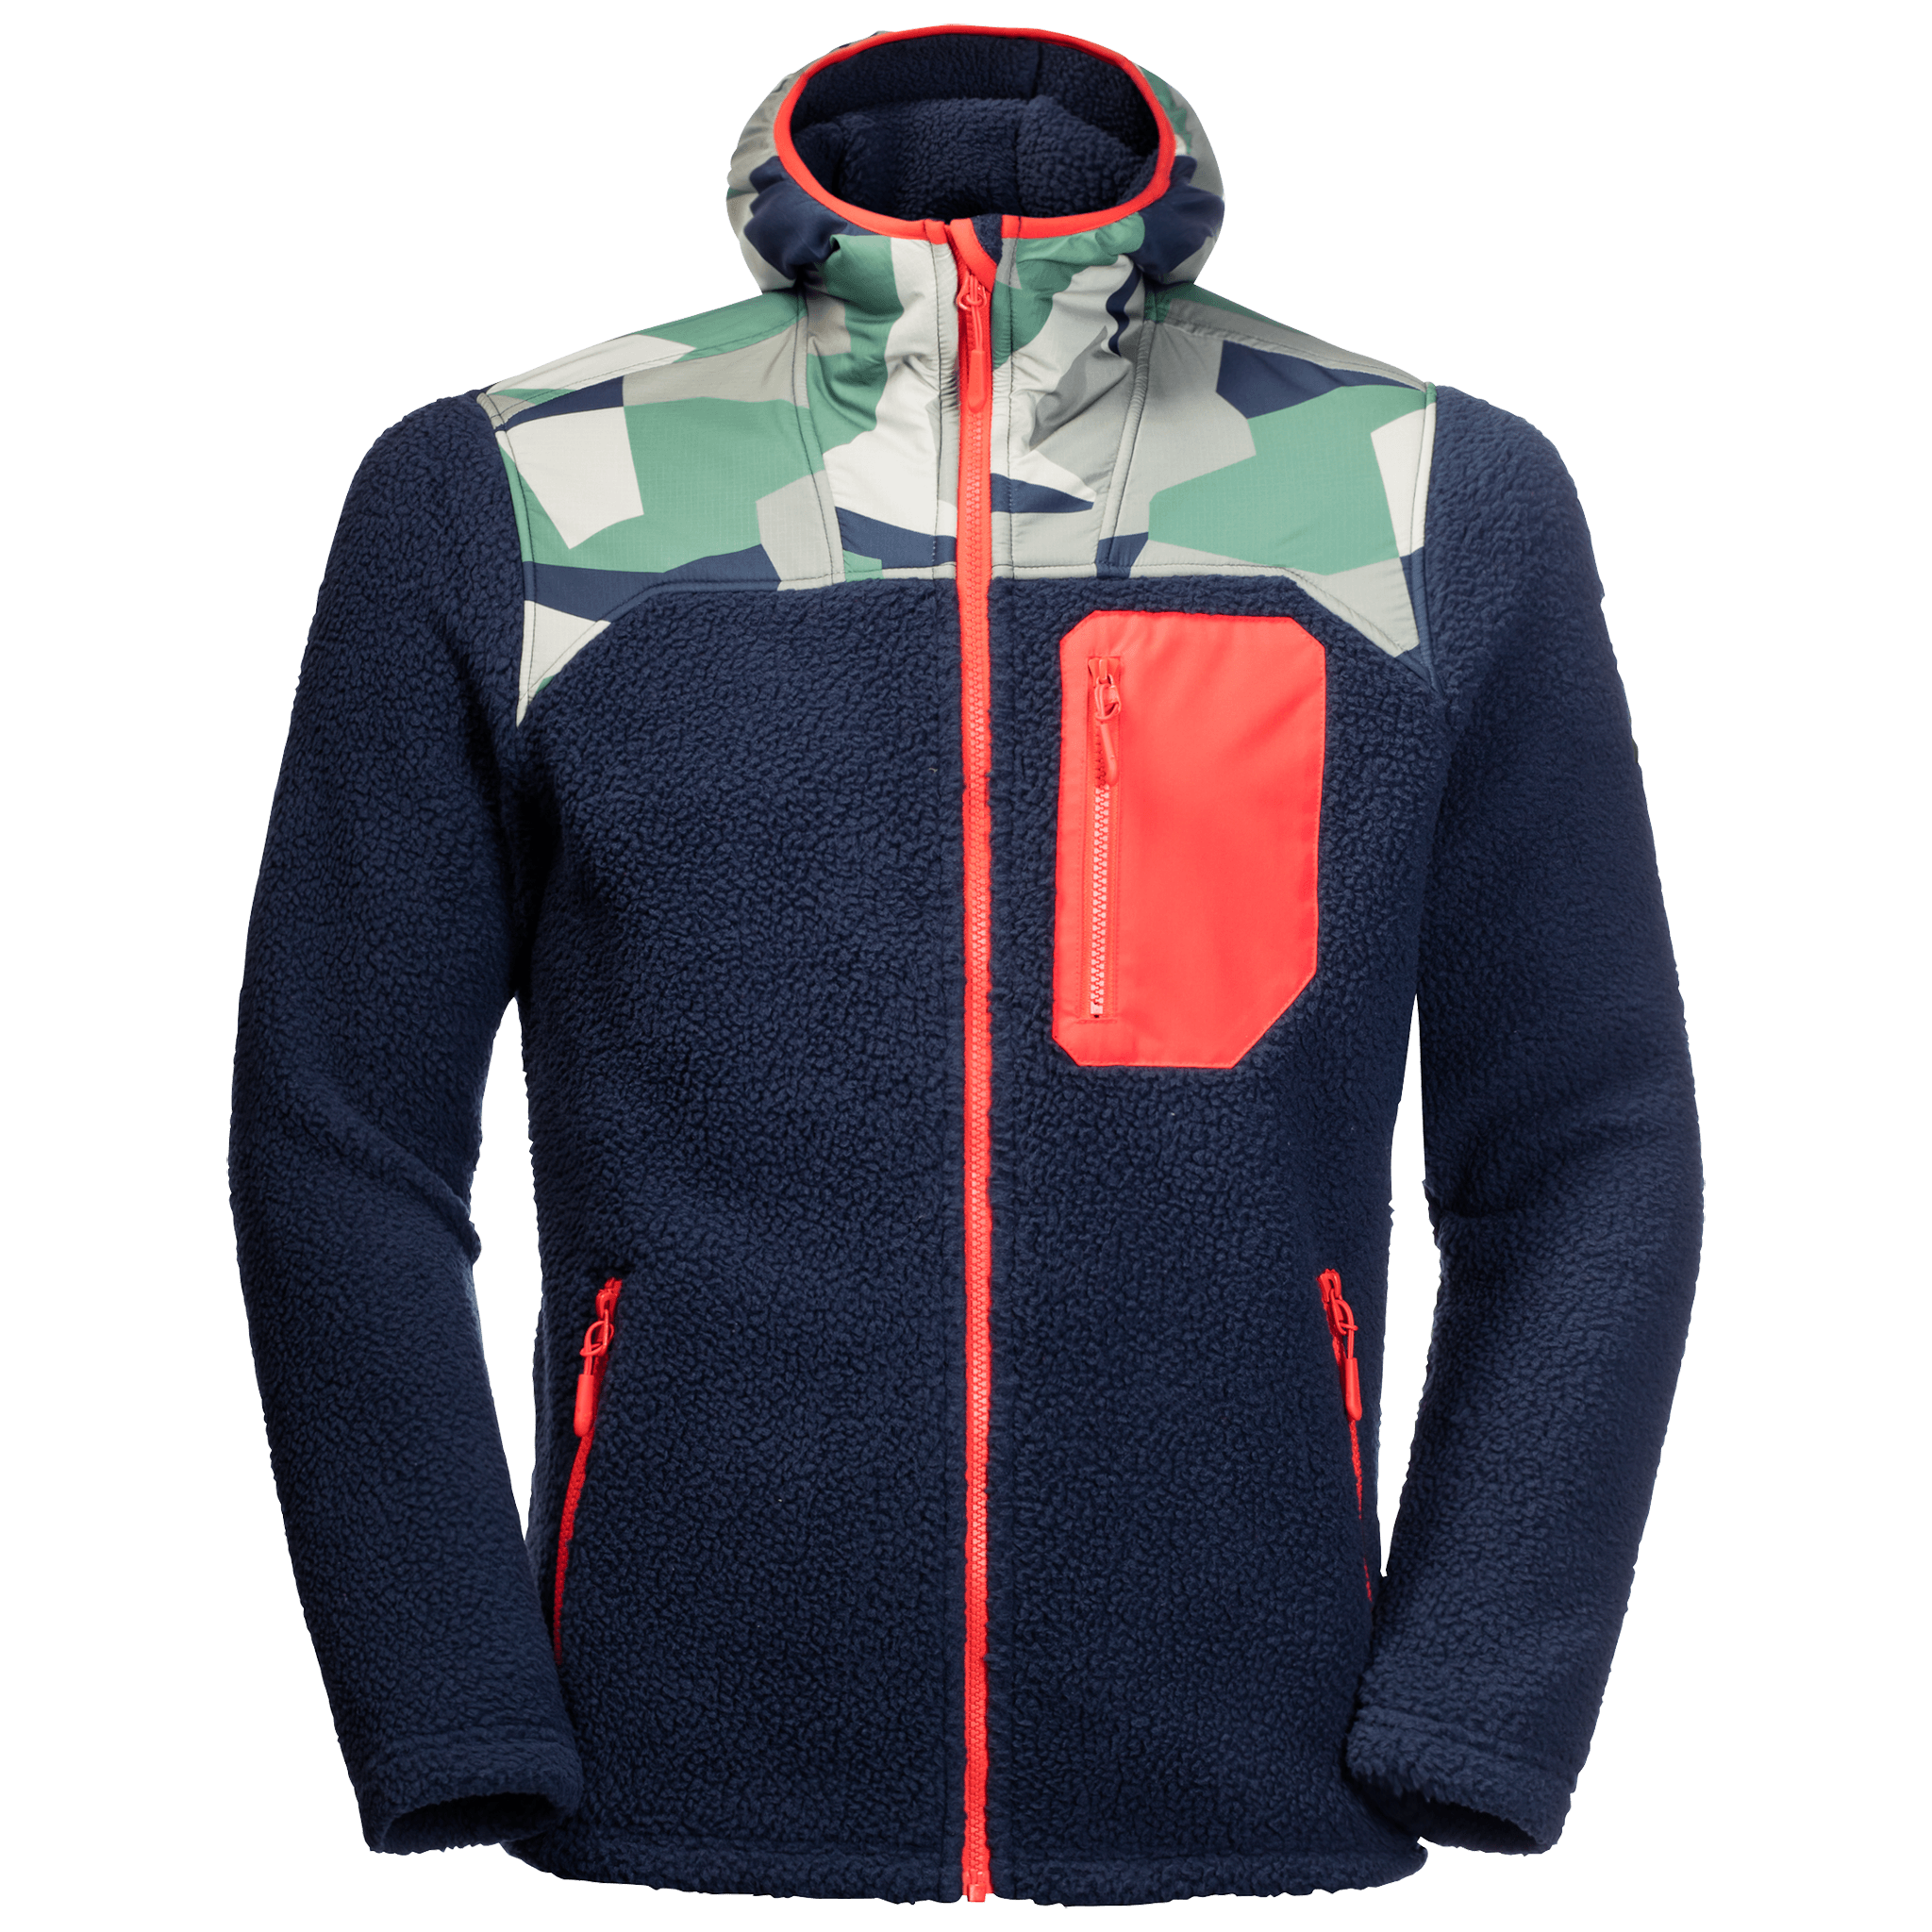 Night Blue Midweight Fleece Jacket